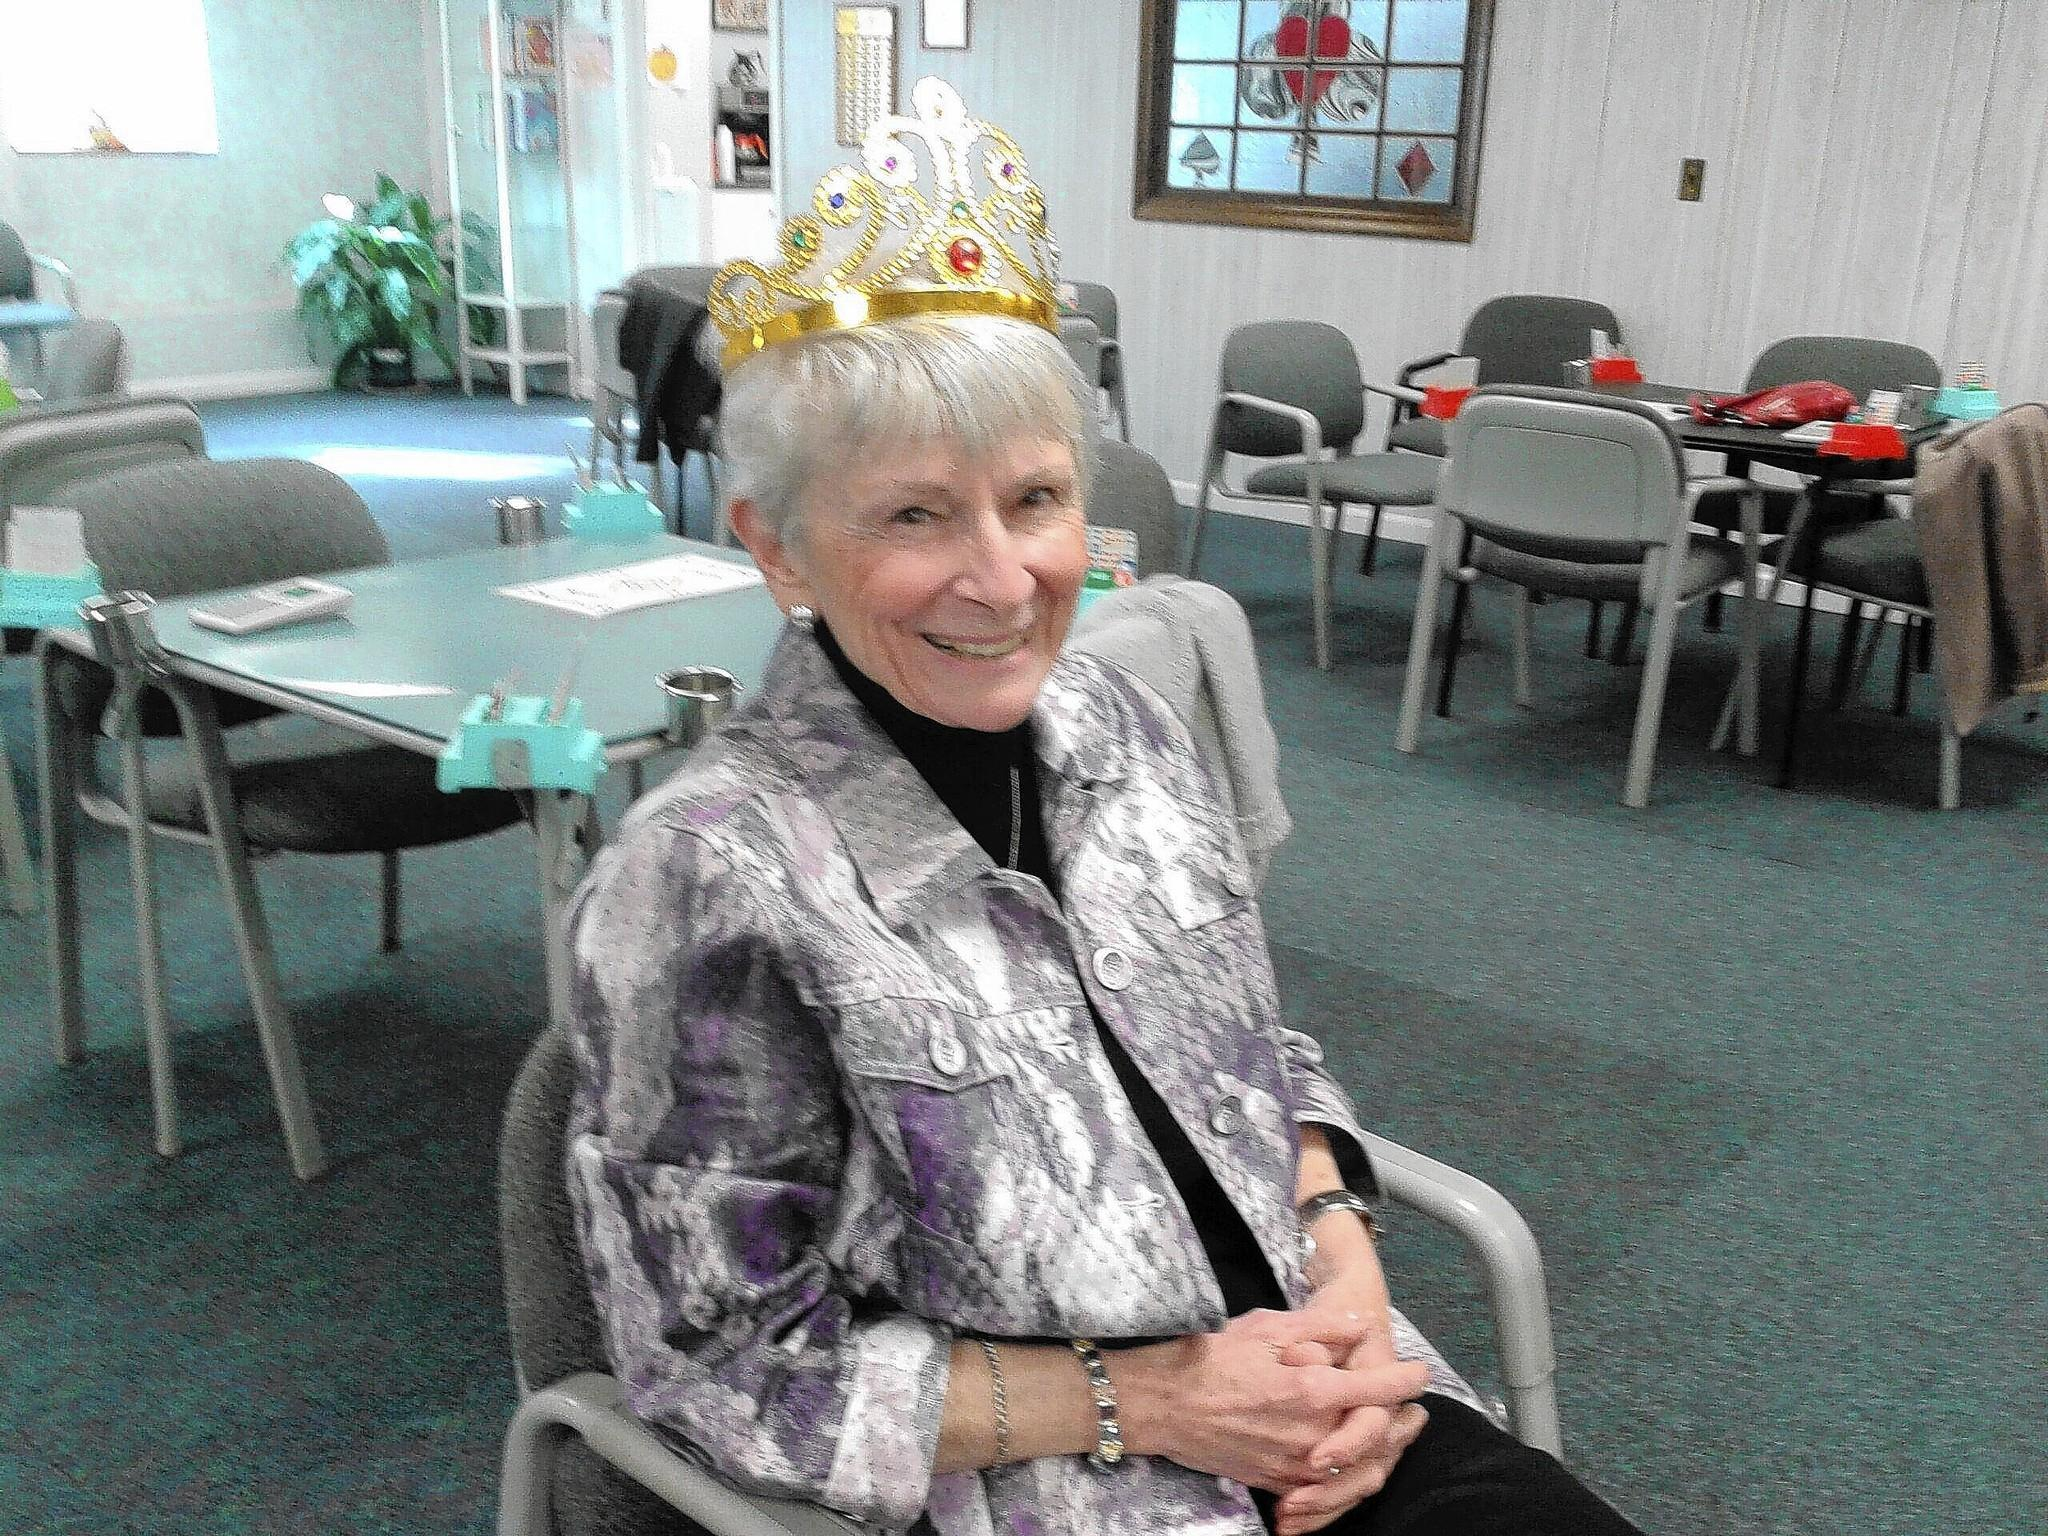 """Dixie Mastrandrea, of West Hartford, was a longtime member and former president of the Hartford Bridge Club. The photograph, which was taken at the club, earned her the nickname, """"The Queen of Hearts."""""""